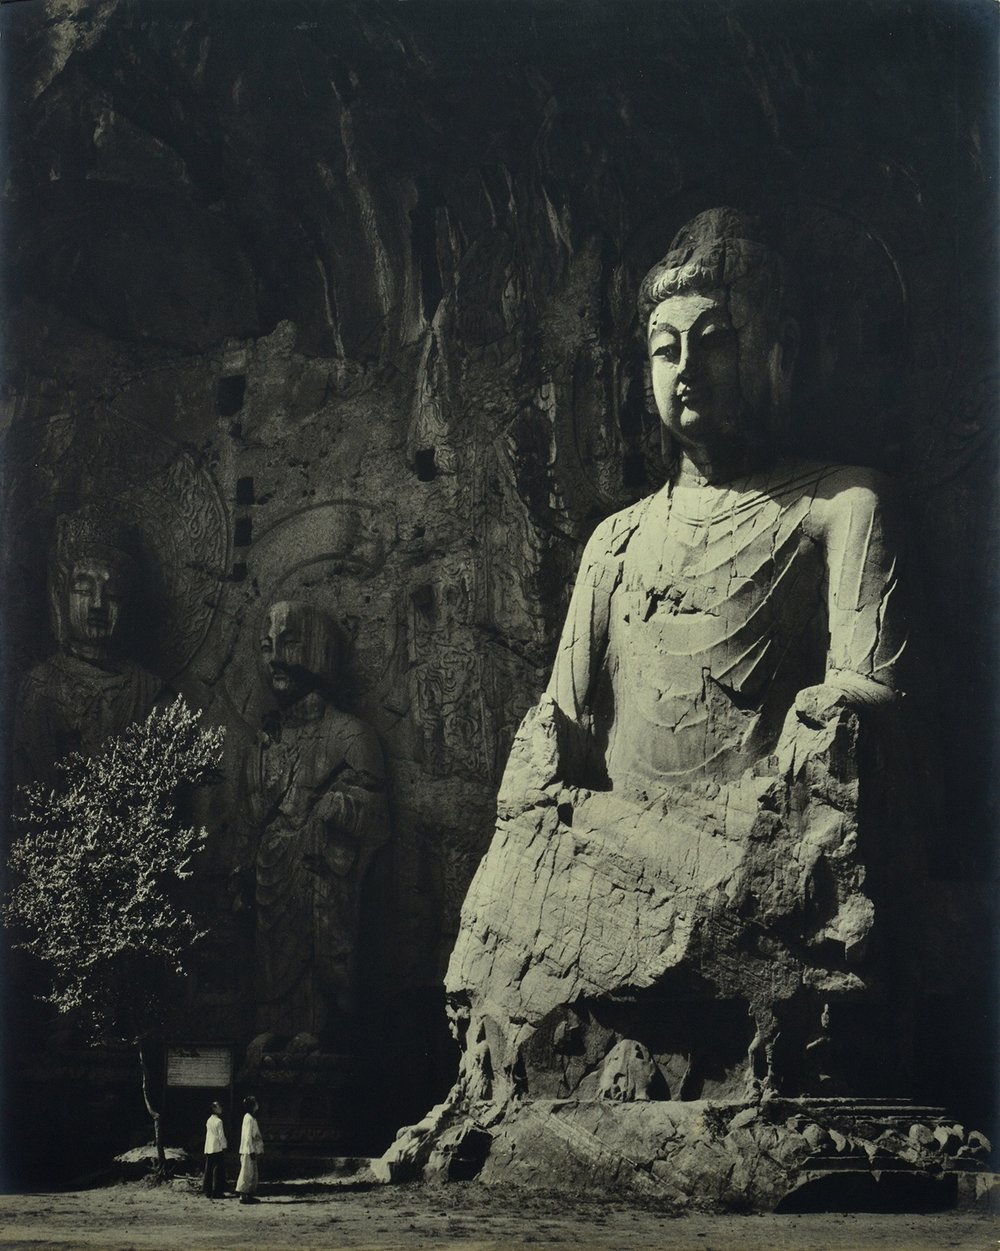 Xue Zijiang, Stone Buddha of Longmen, Luoyang of Henan Province, printed on fine heavy paper, mounted on cardboard, 1958, 63.1×50.5cm, courtesy of Huang Jianpeng Gallery 黄建鹏画廊